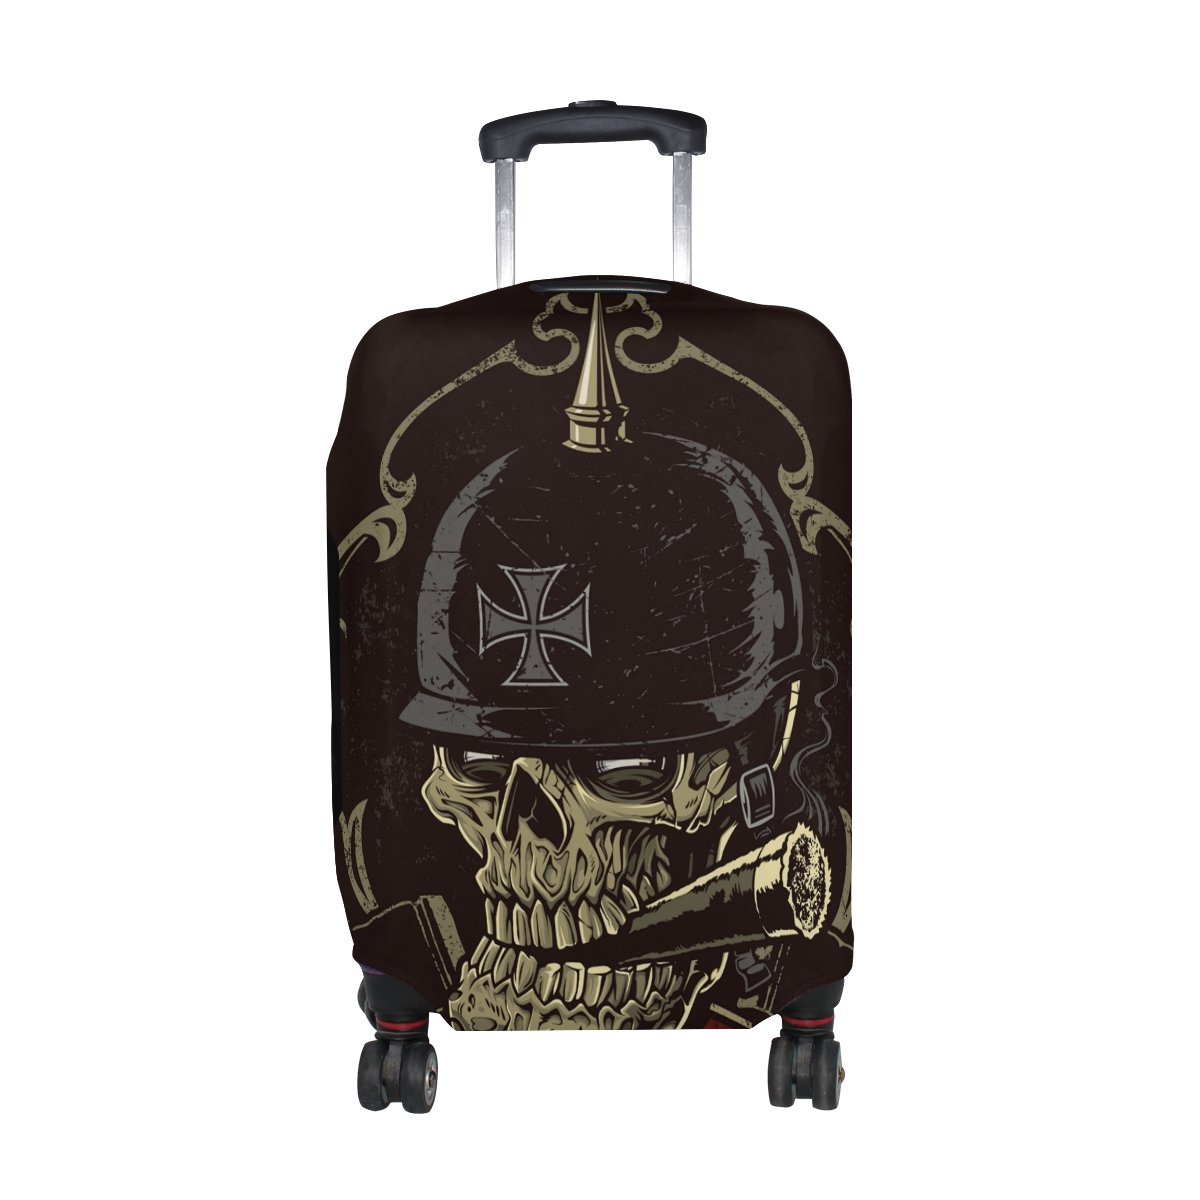 Punk Skull Travel Luggage Protector Baggage Suitcase Cover Fits 29-32 Inch Luggage